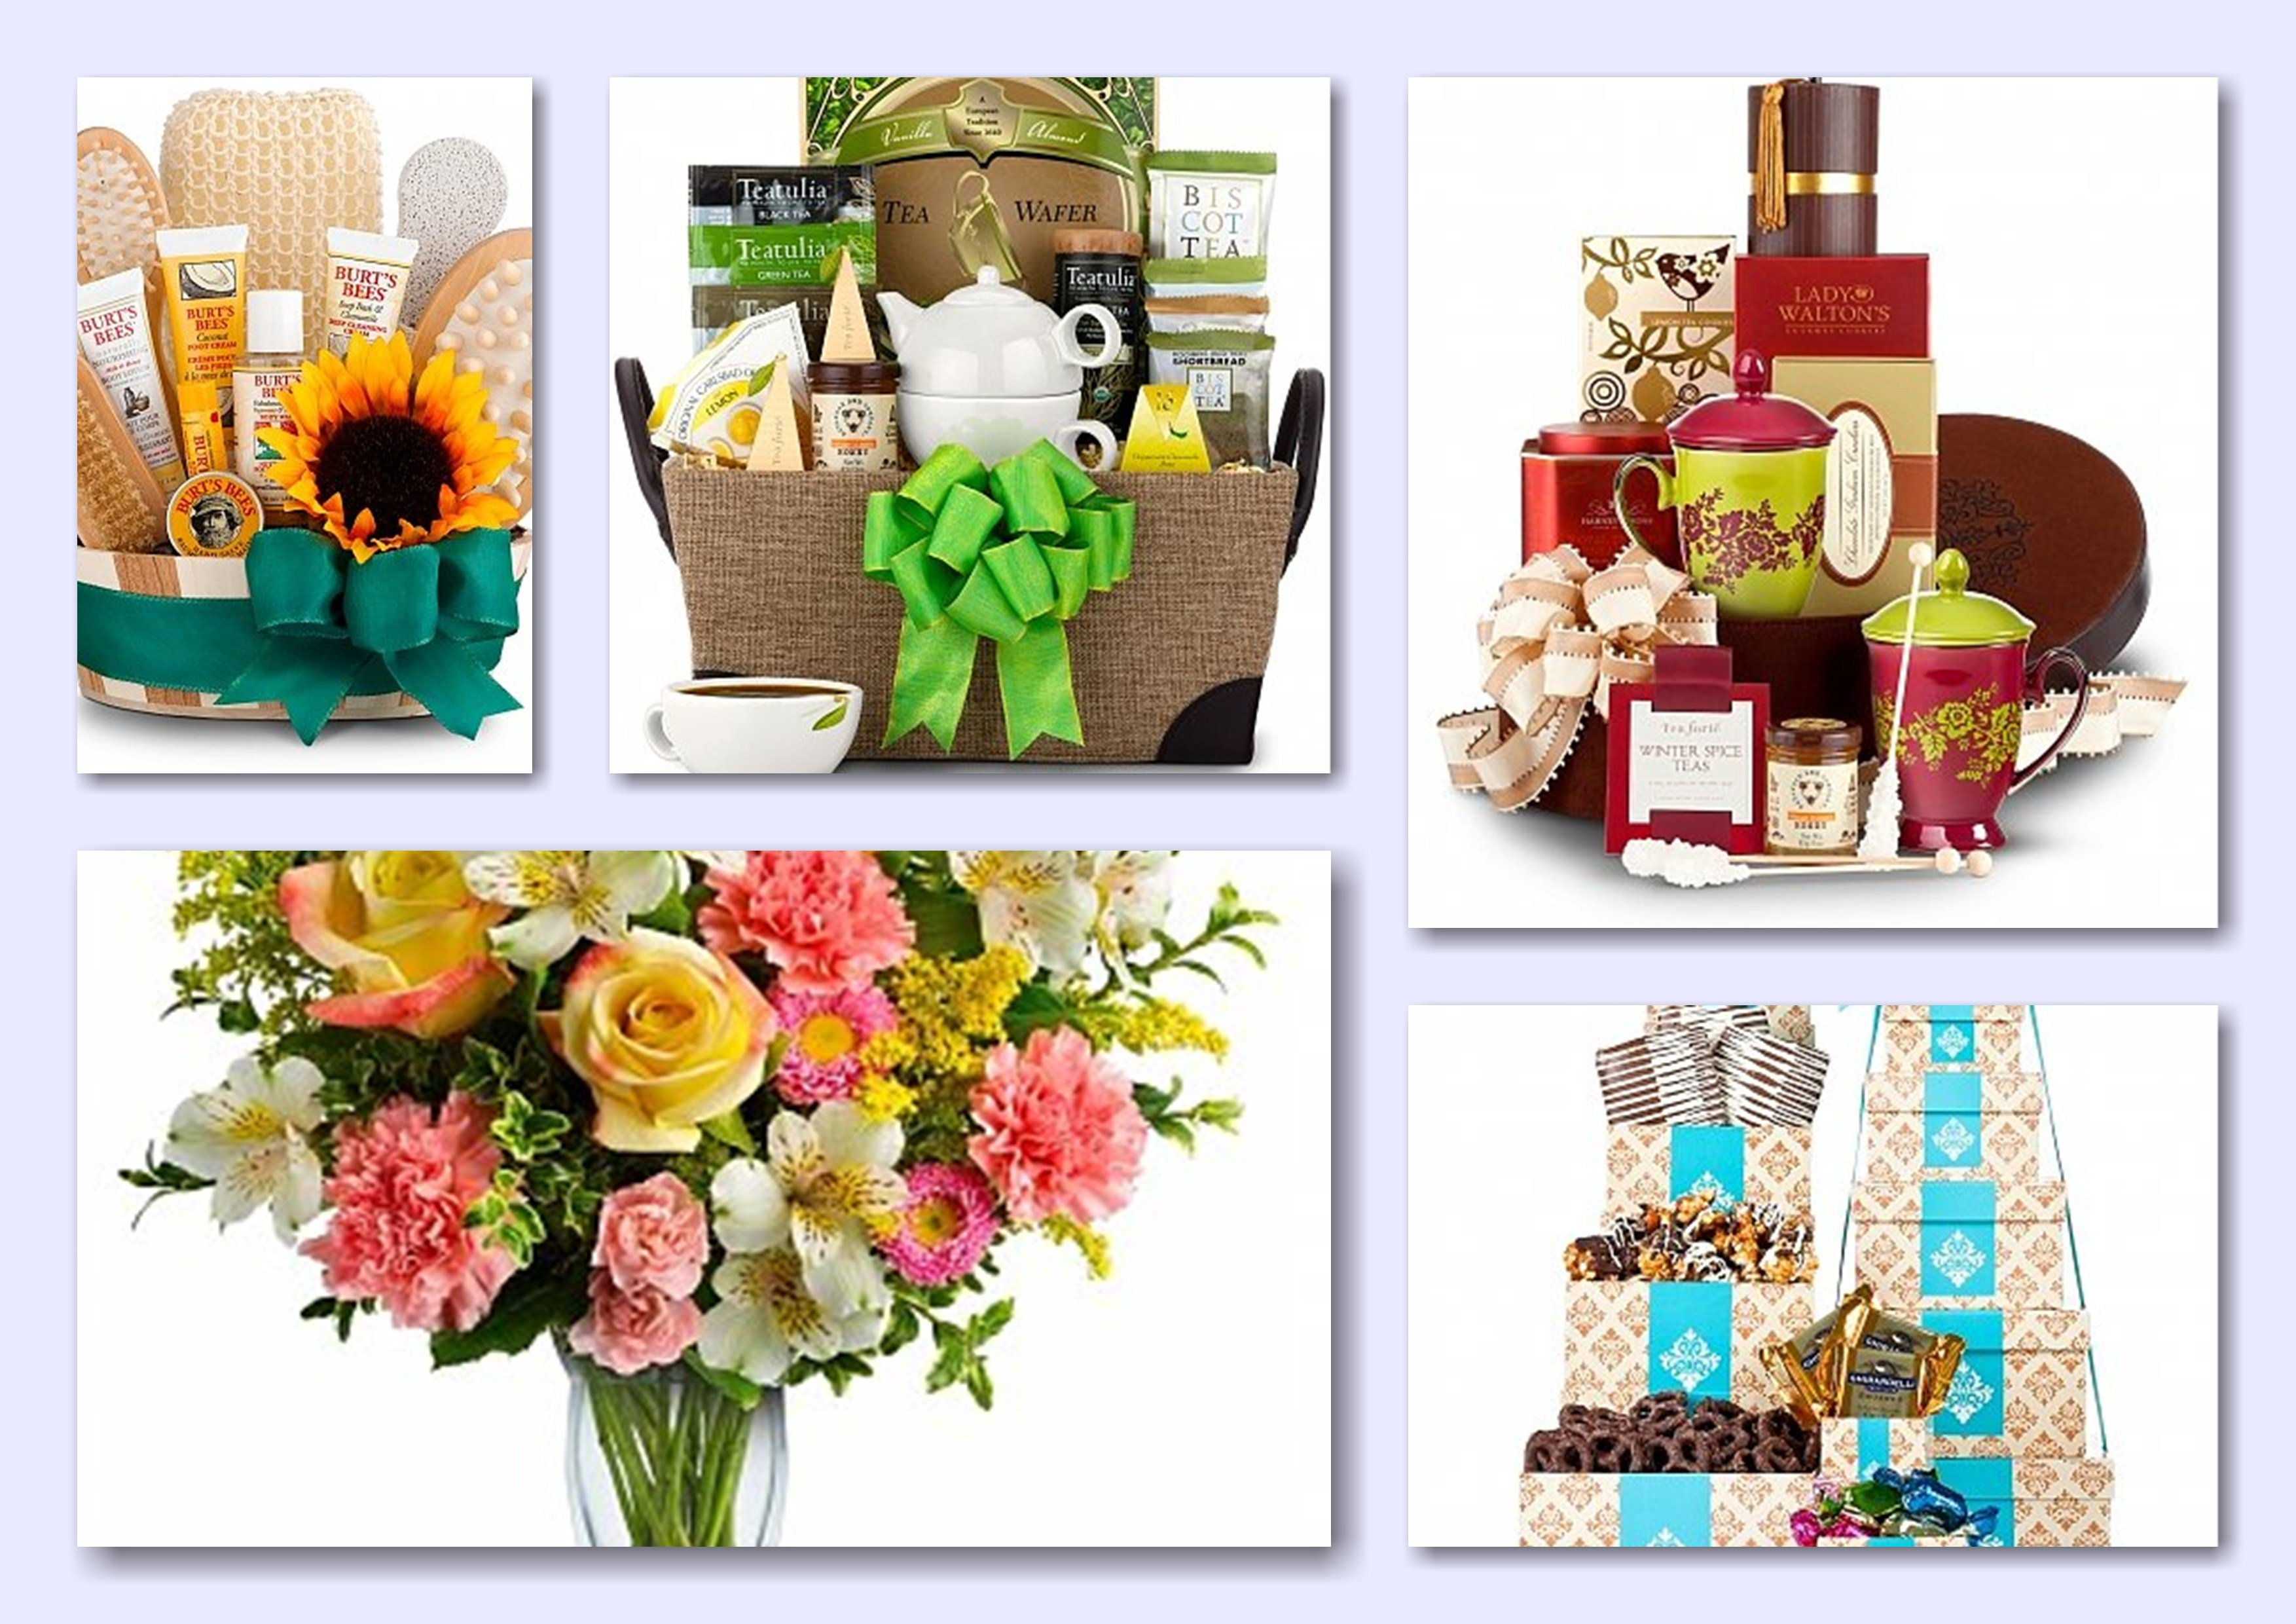 5 of our Favorite Mother's Day Gifts Now 15% Off